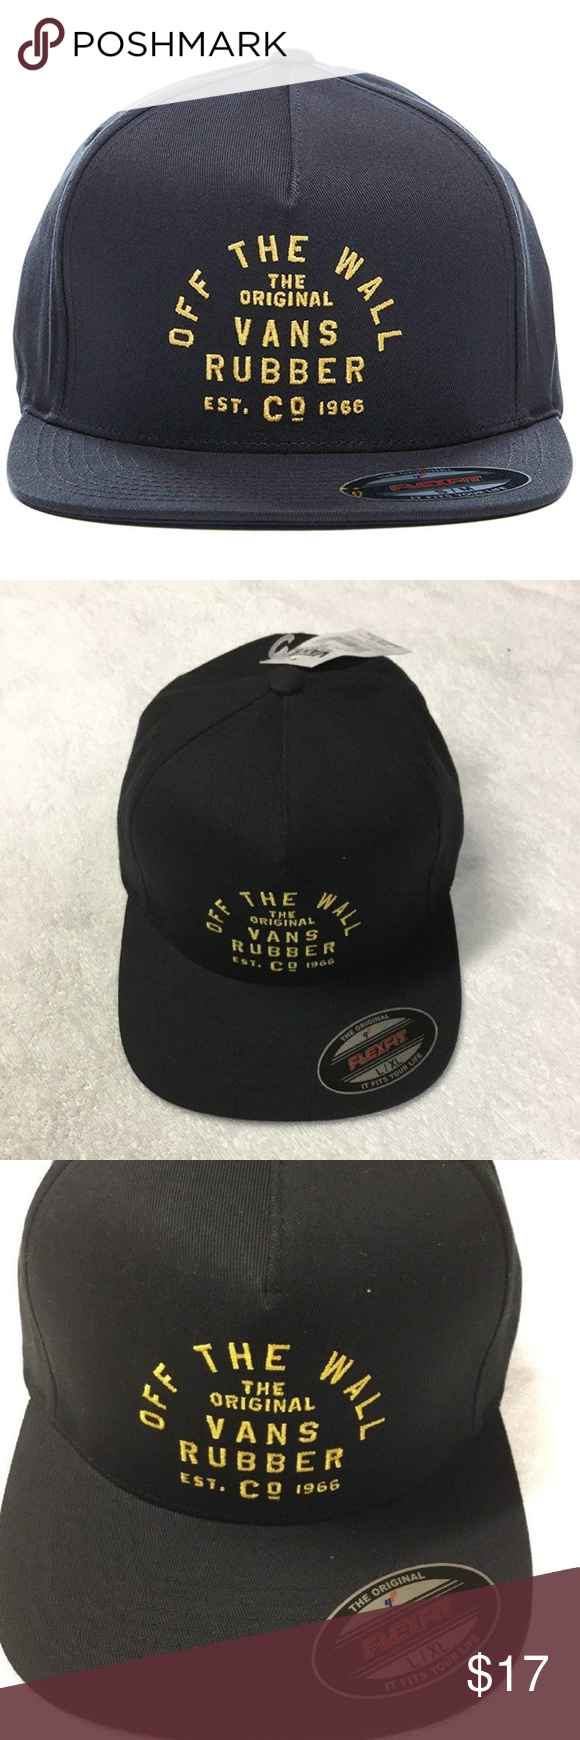 fbe870ac27b Vans Men s Stacked Rubber Hat Black NWT Vans Men s Stacked Rubber Hat Black  NWT.AUTHENTIC